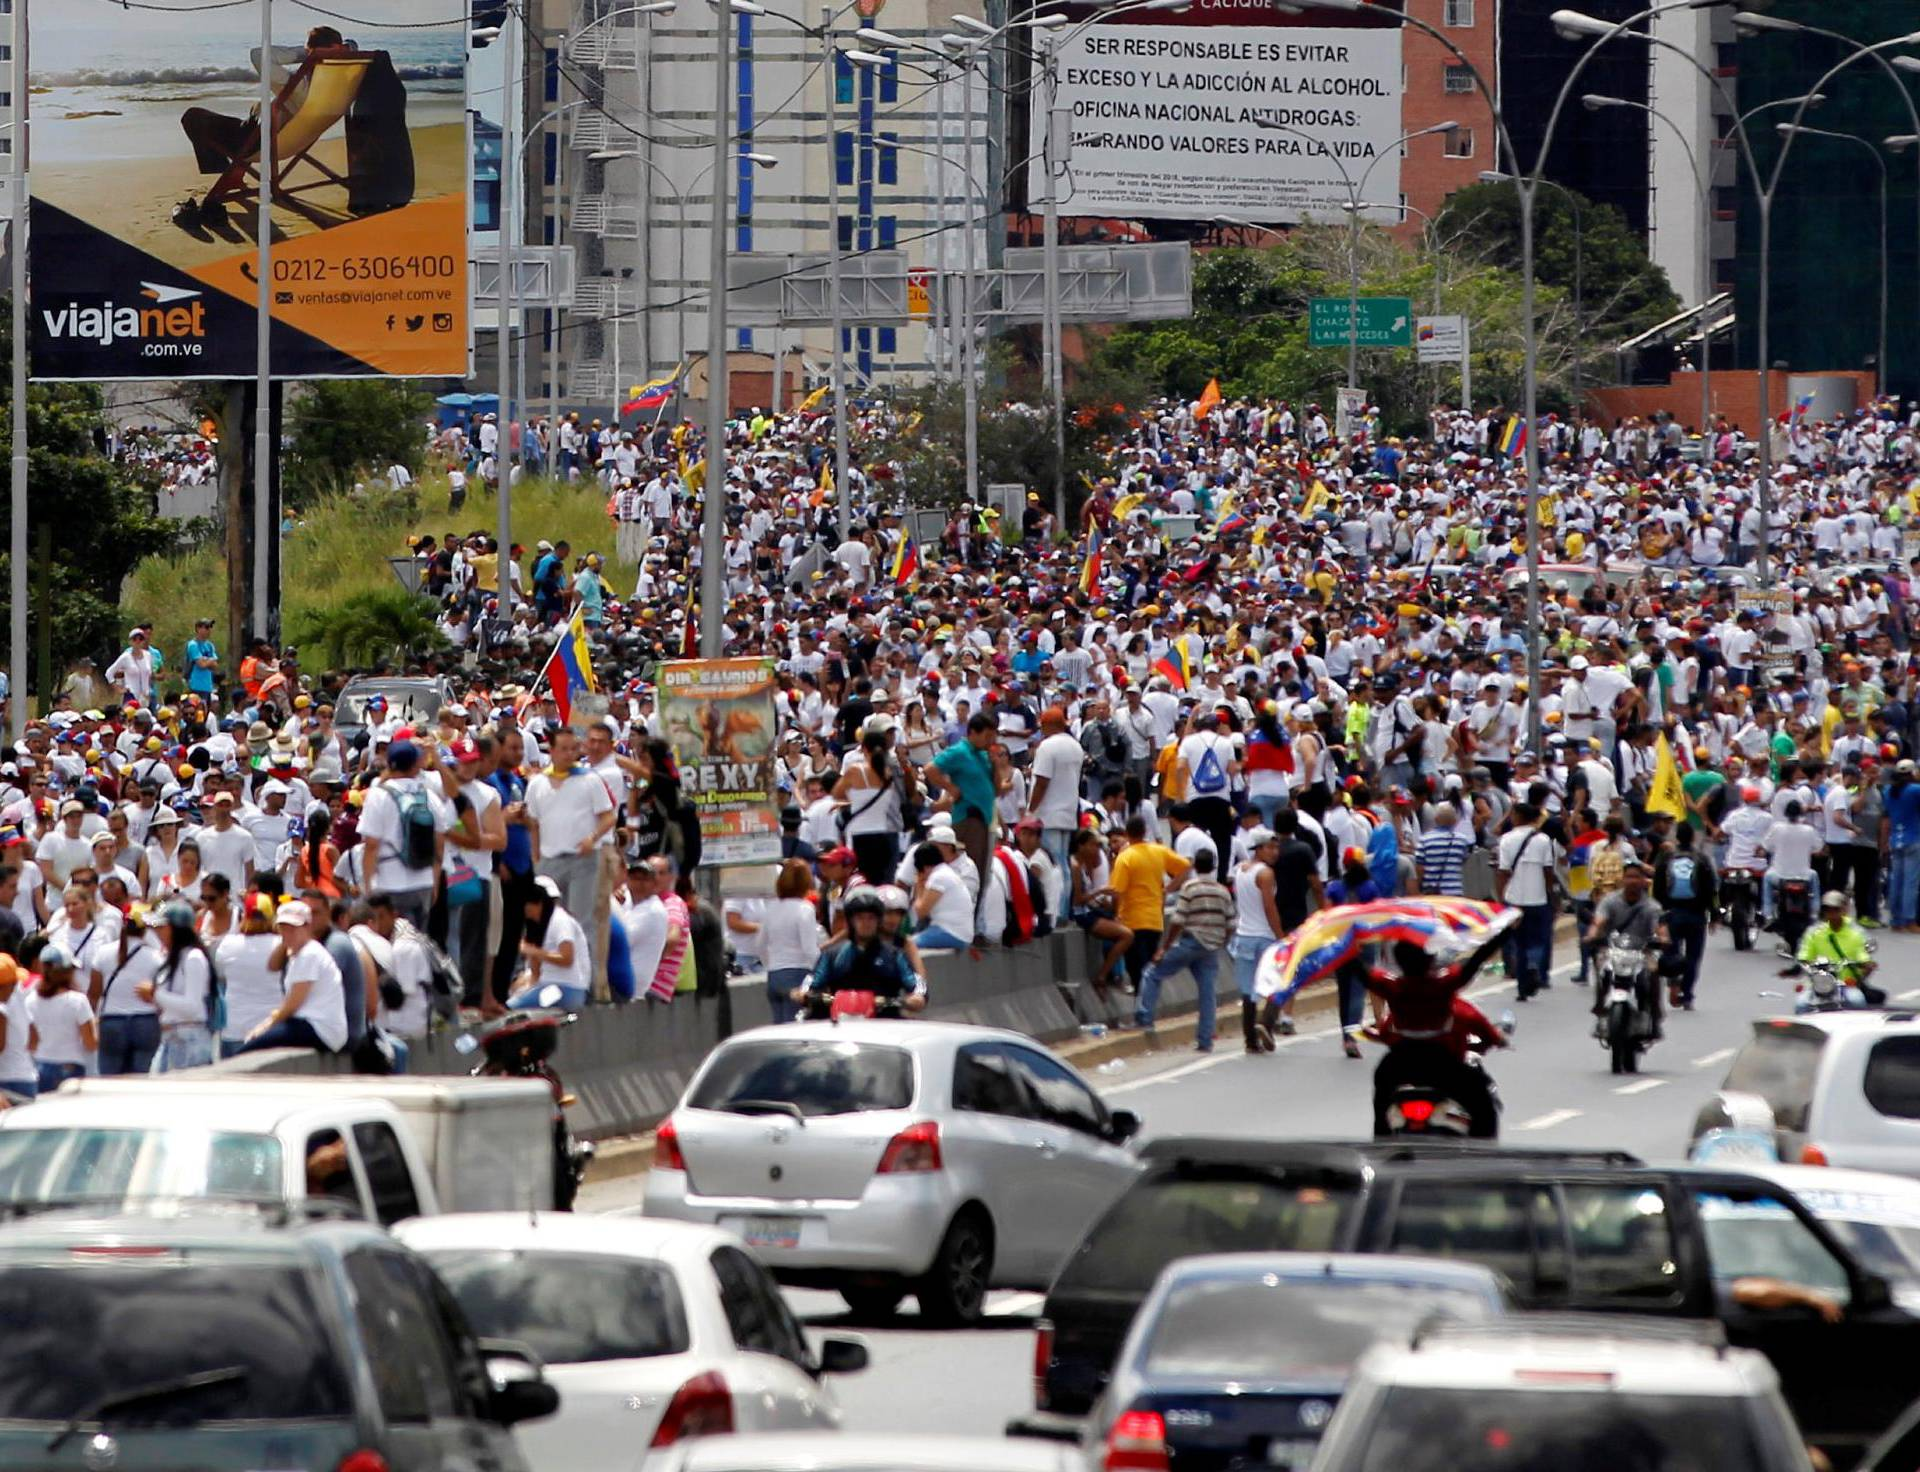 Opposition supporters take part in a rally to demand a referendum to remove Venezuela's President Nicolas Maduro, in Caracas, Venezuela